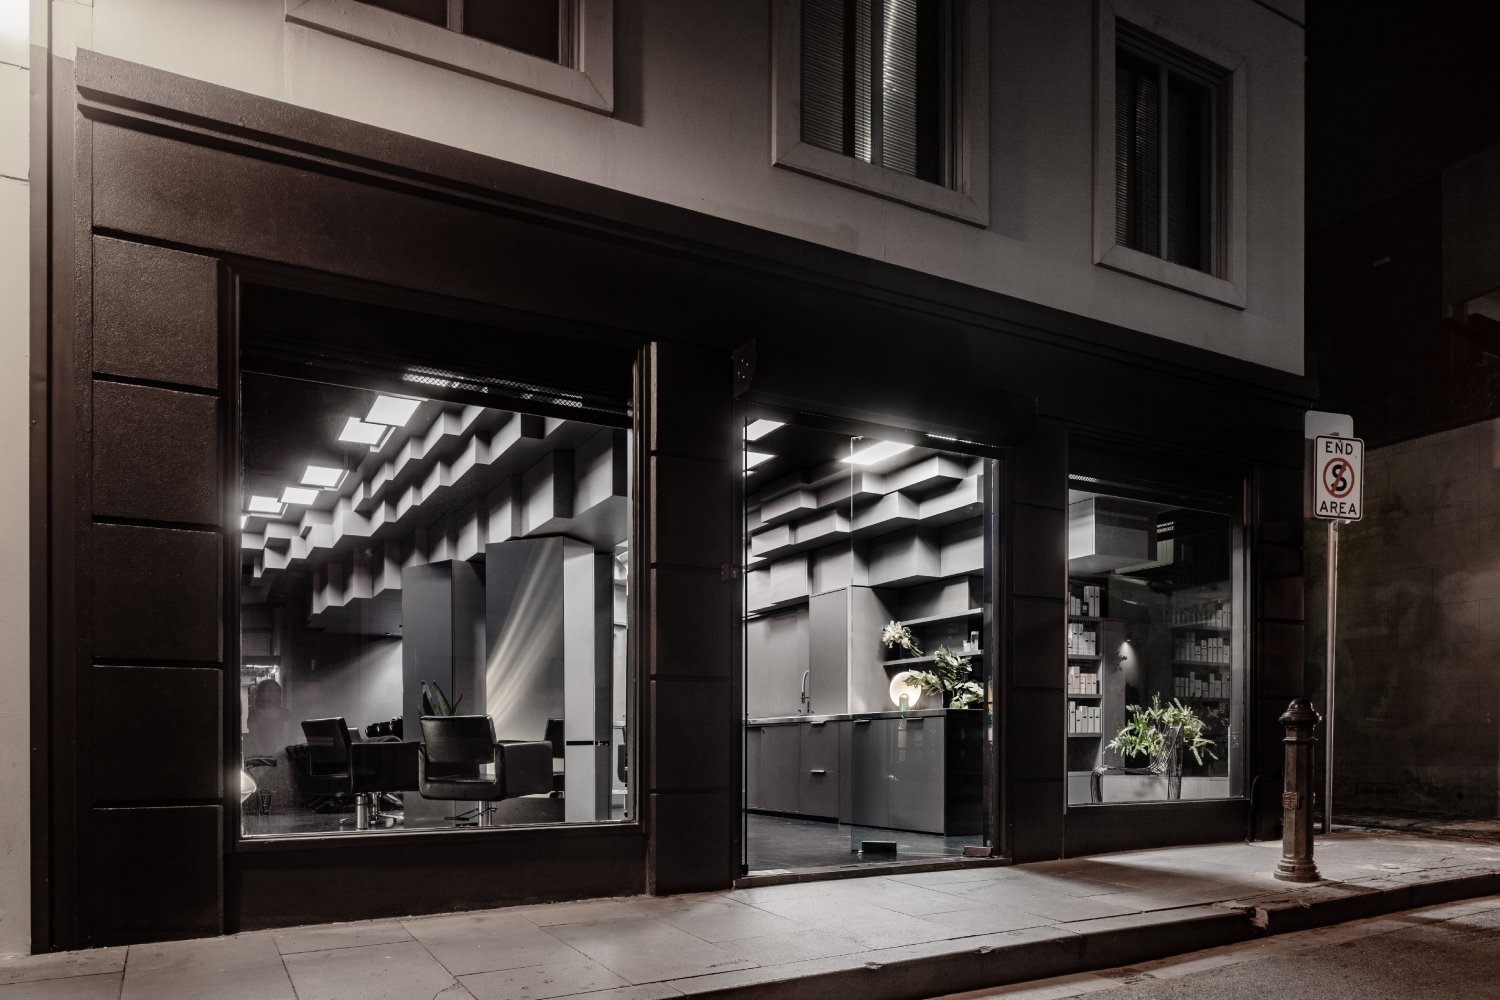 Brompton commercial construction storefront